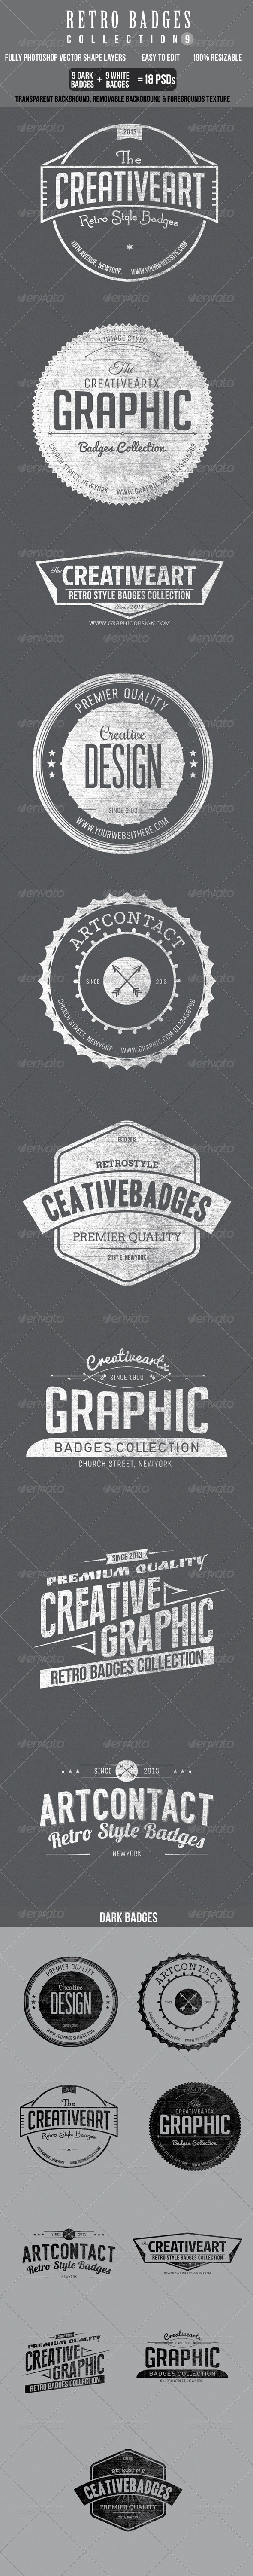 GraphicRiver Retro Bagdes col 9 5359790